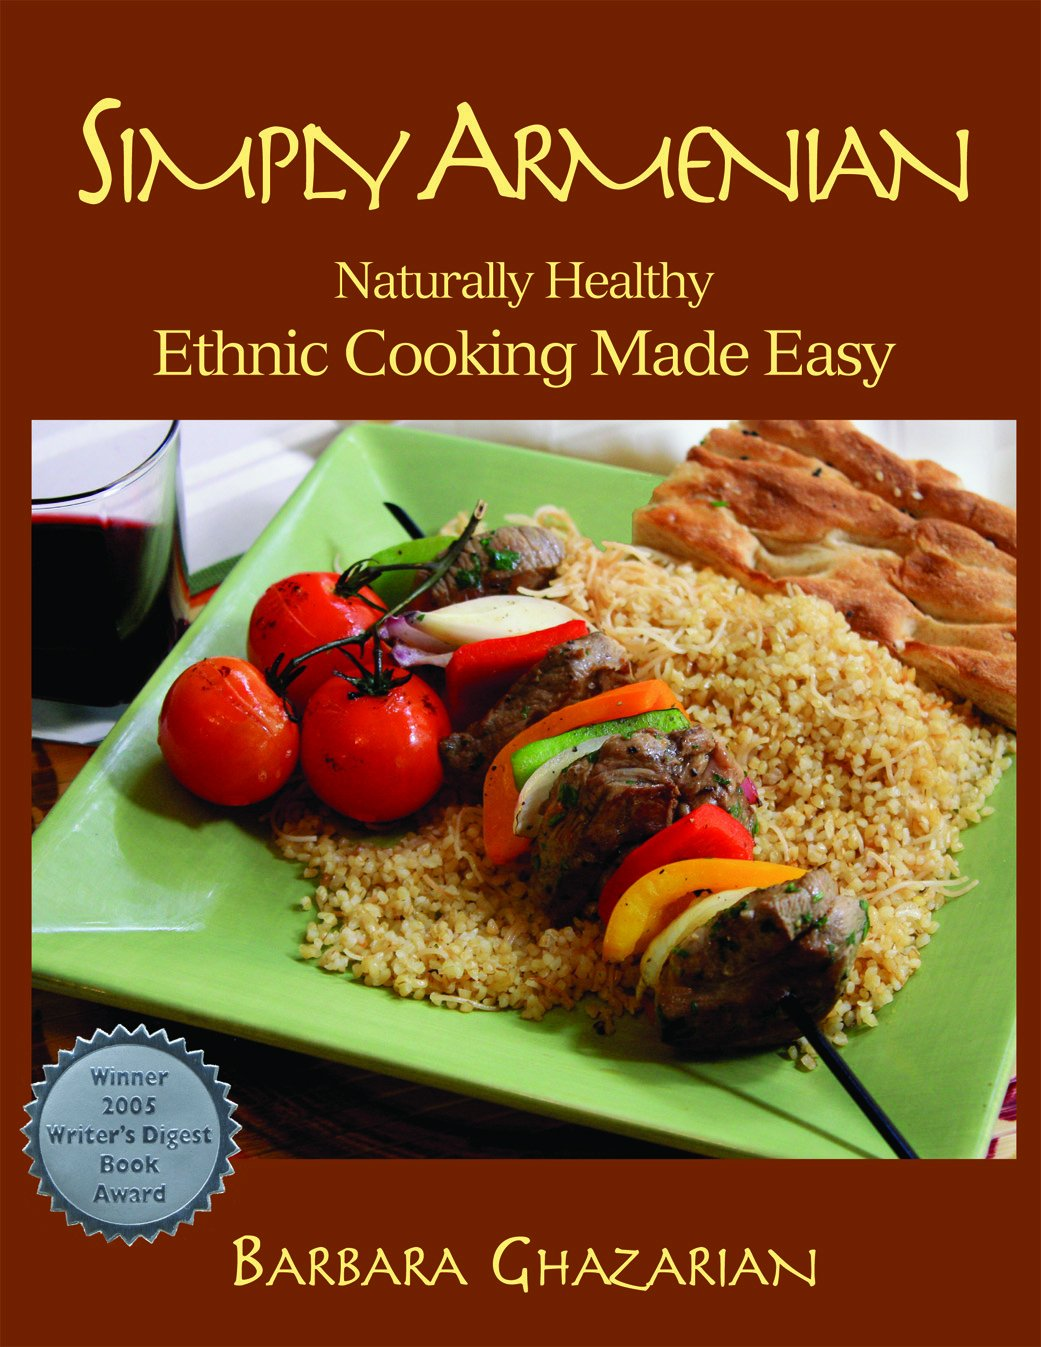 Simply Armenian Naturally Healthy Cooking